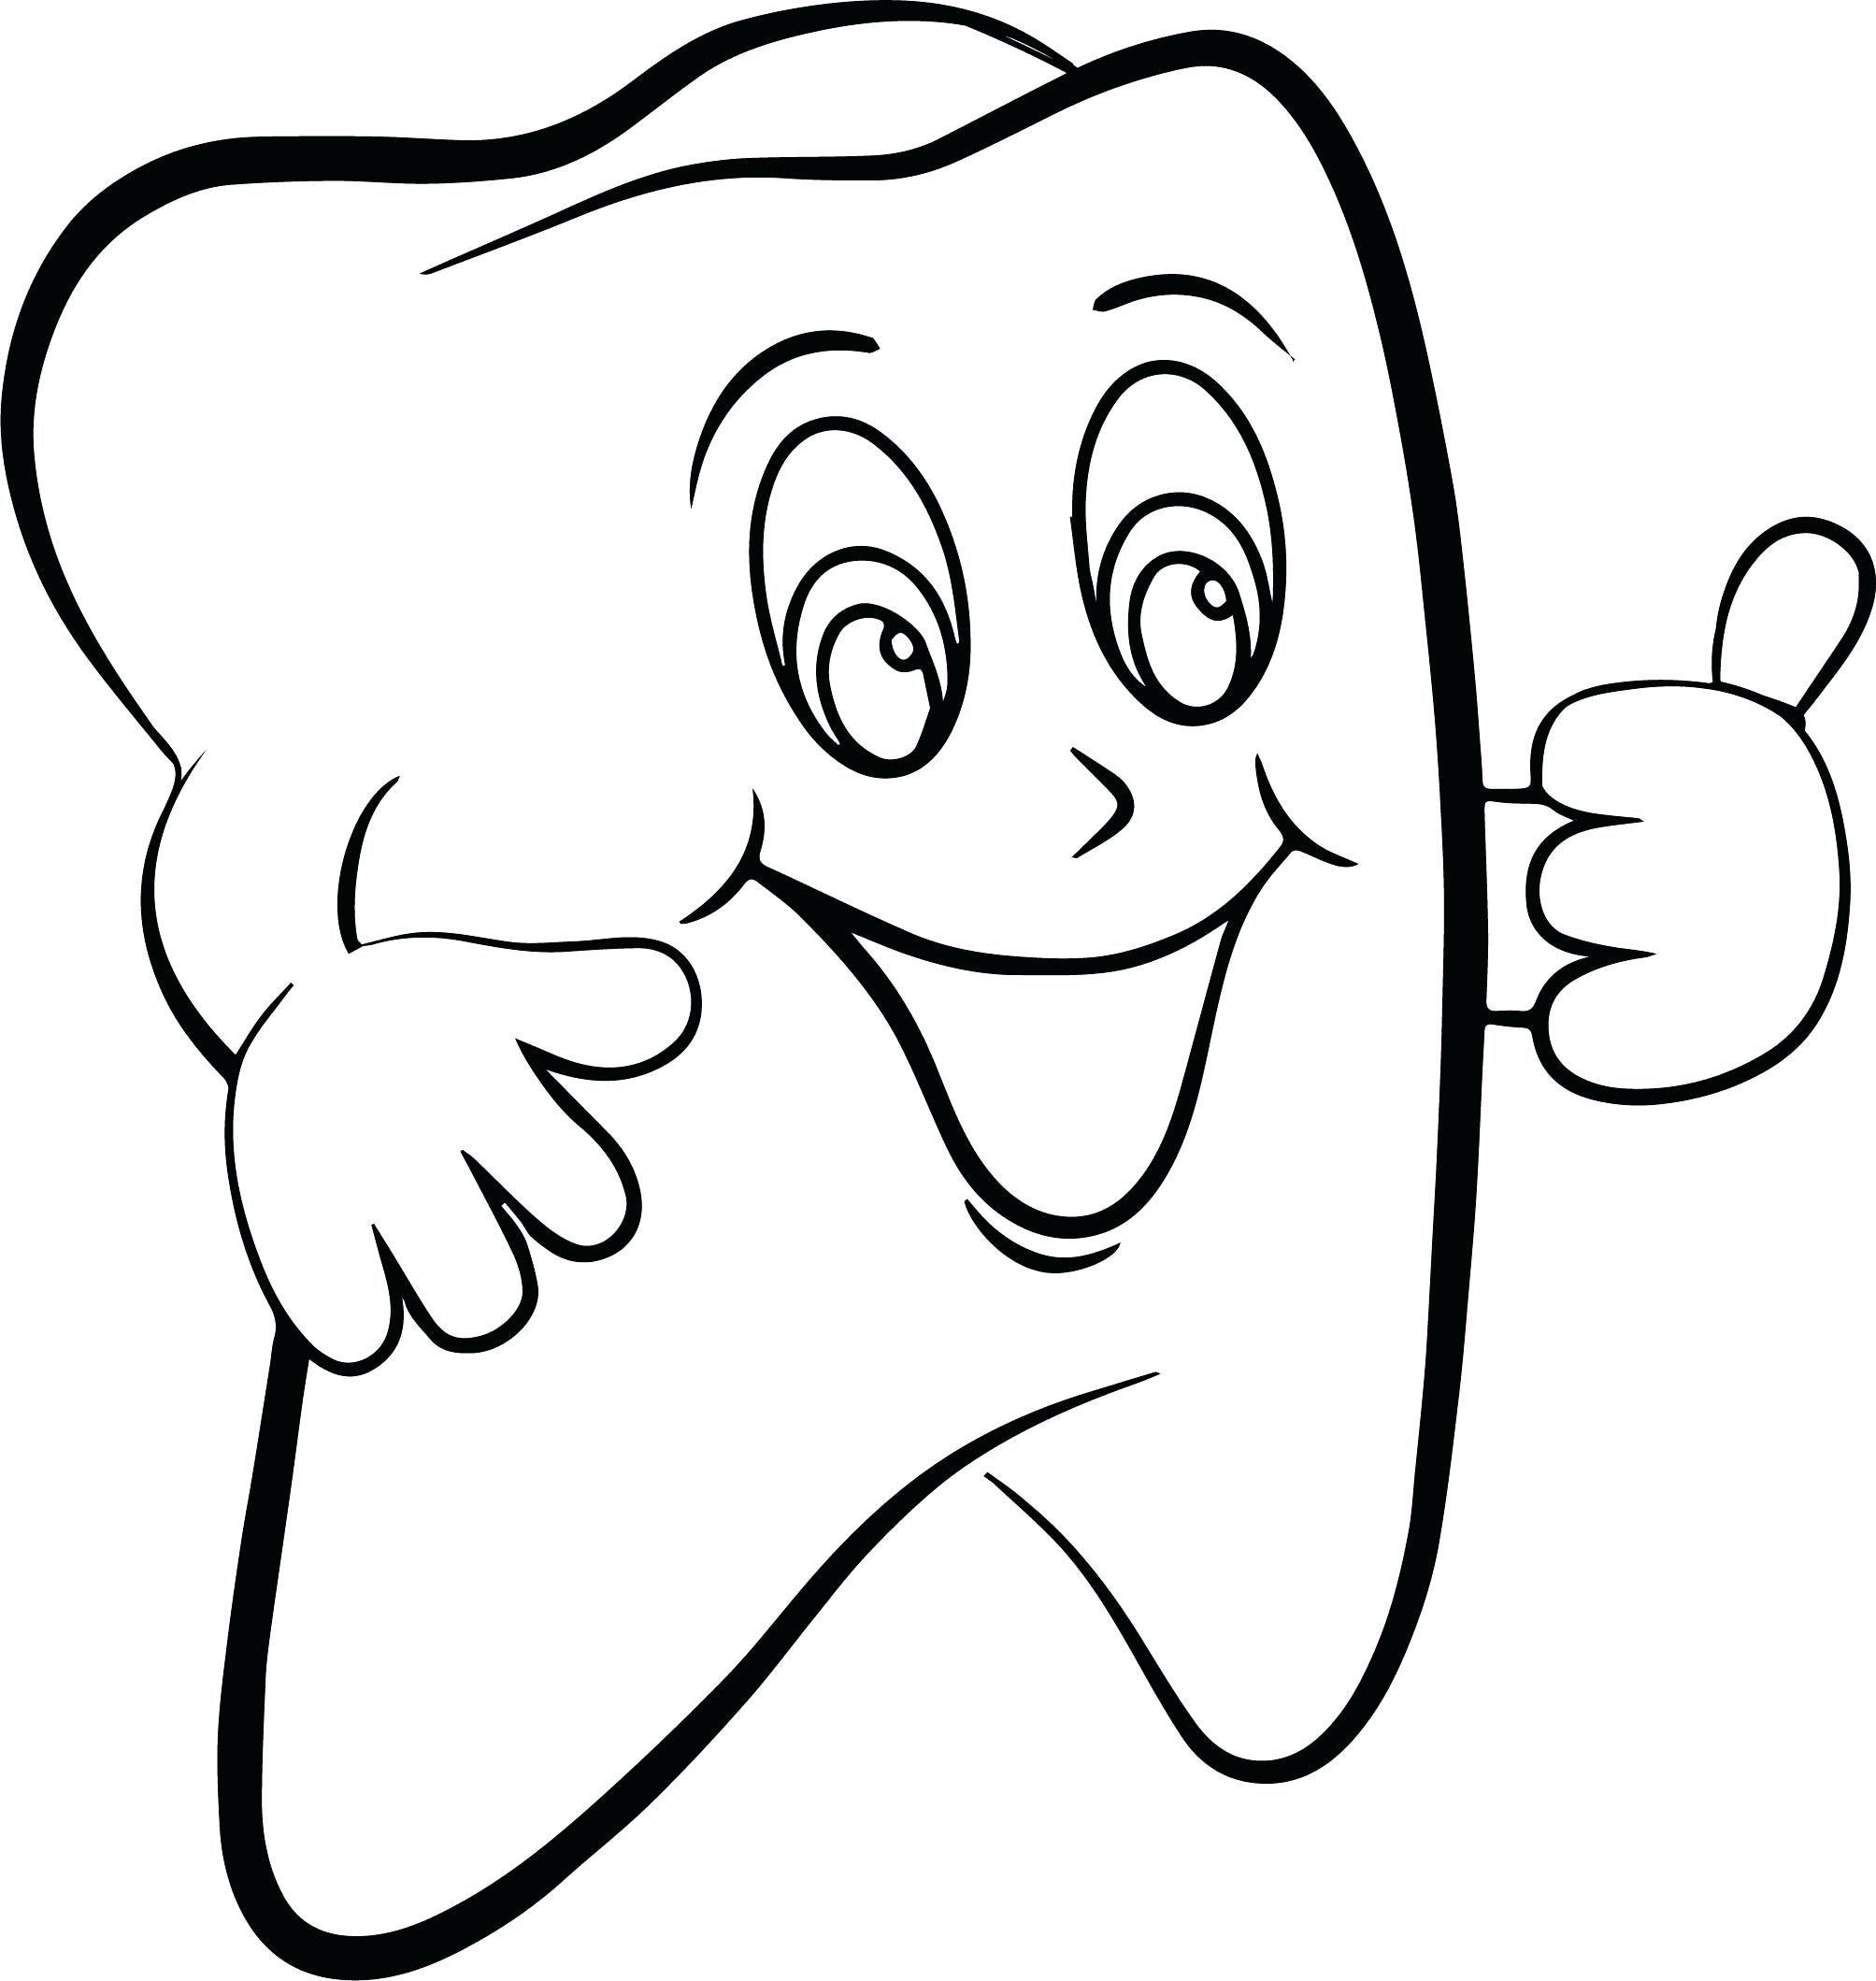 Tooth Coloring Pages Printable At Getcolorings